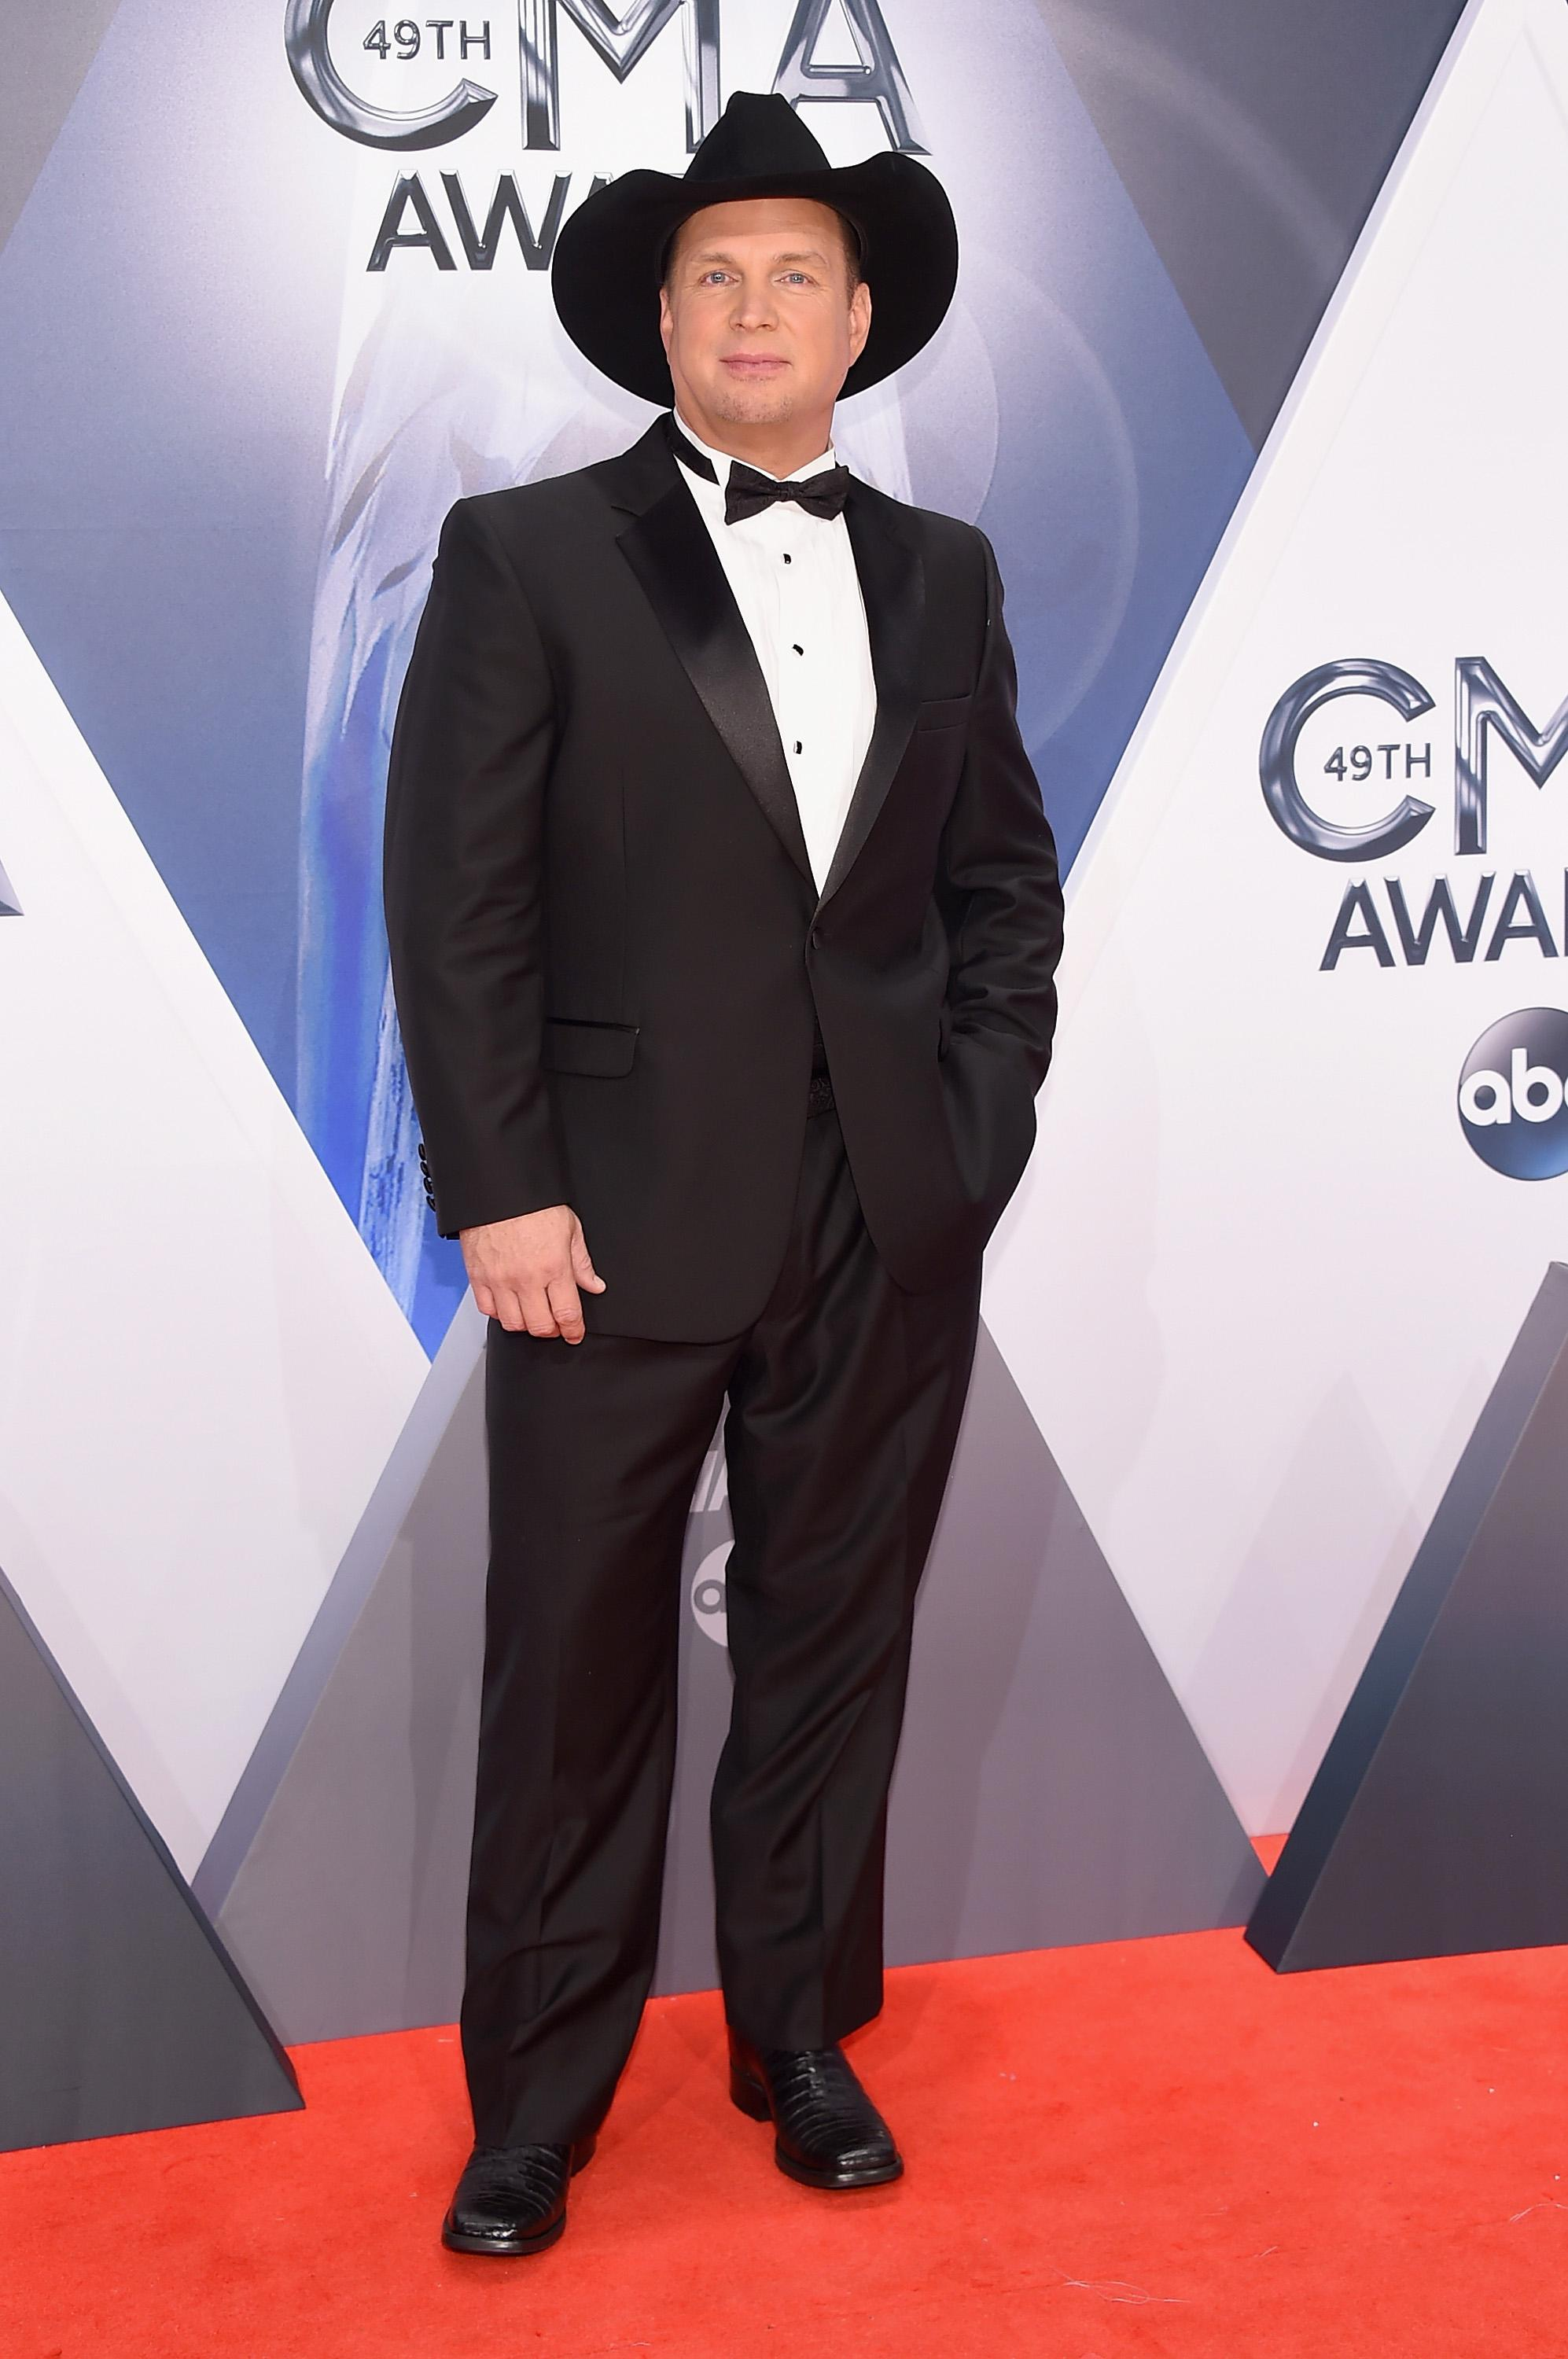 Cma Awards 2015 Red Carpet Recap Photos Of The Best And